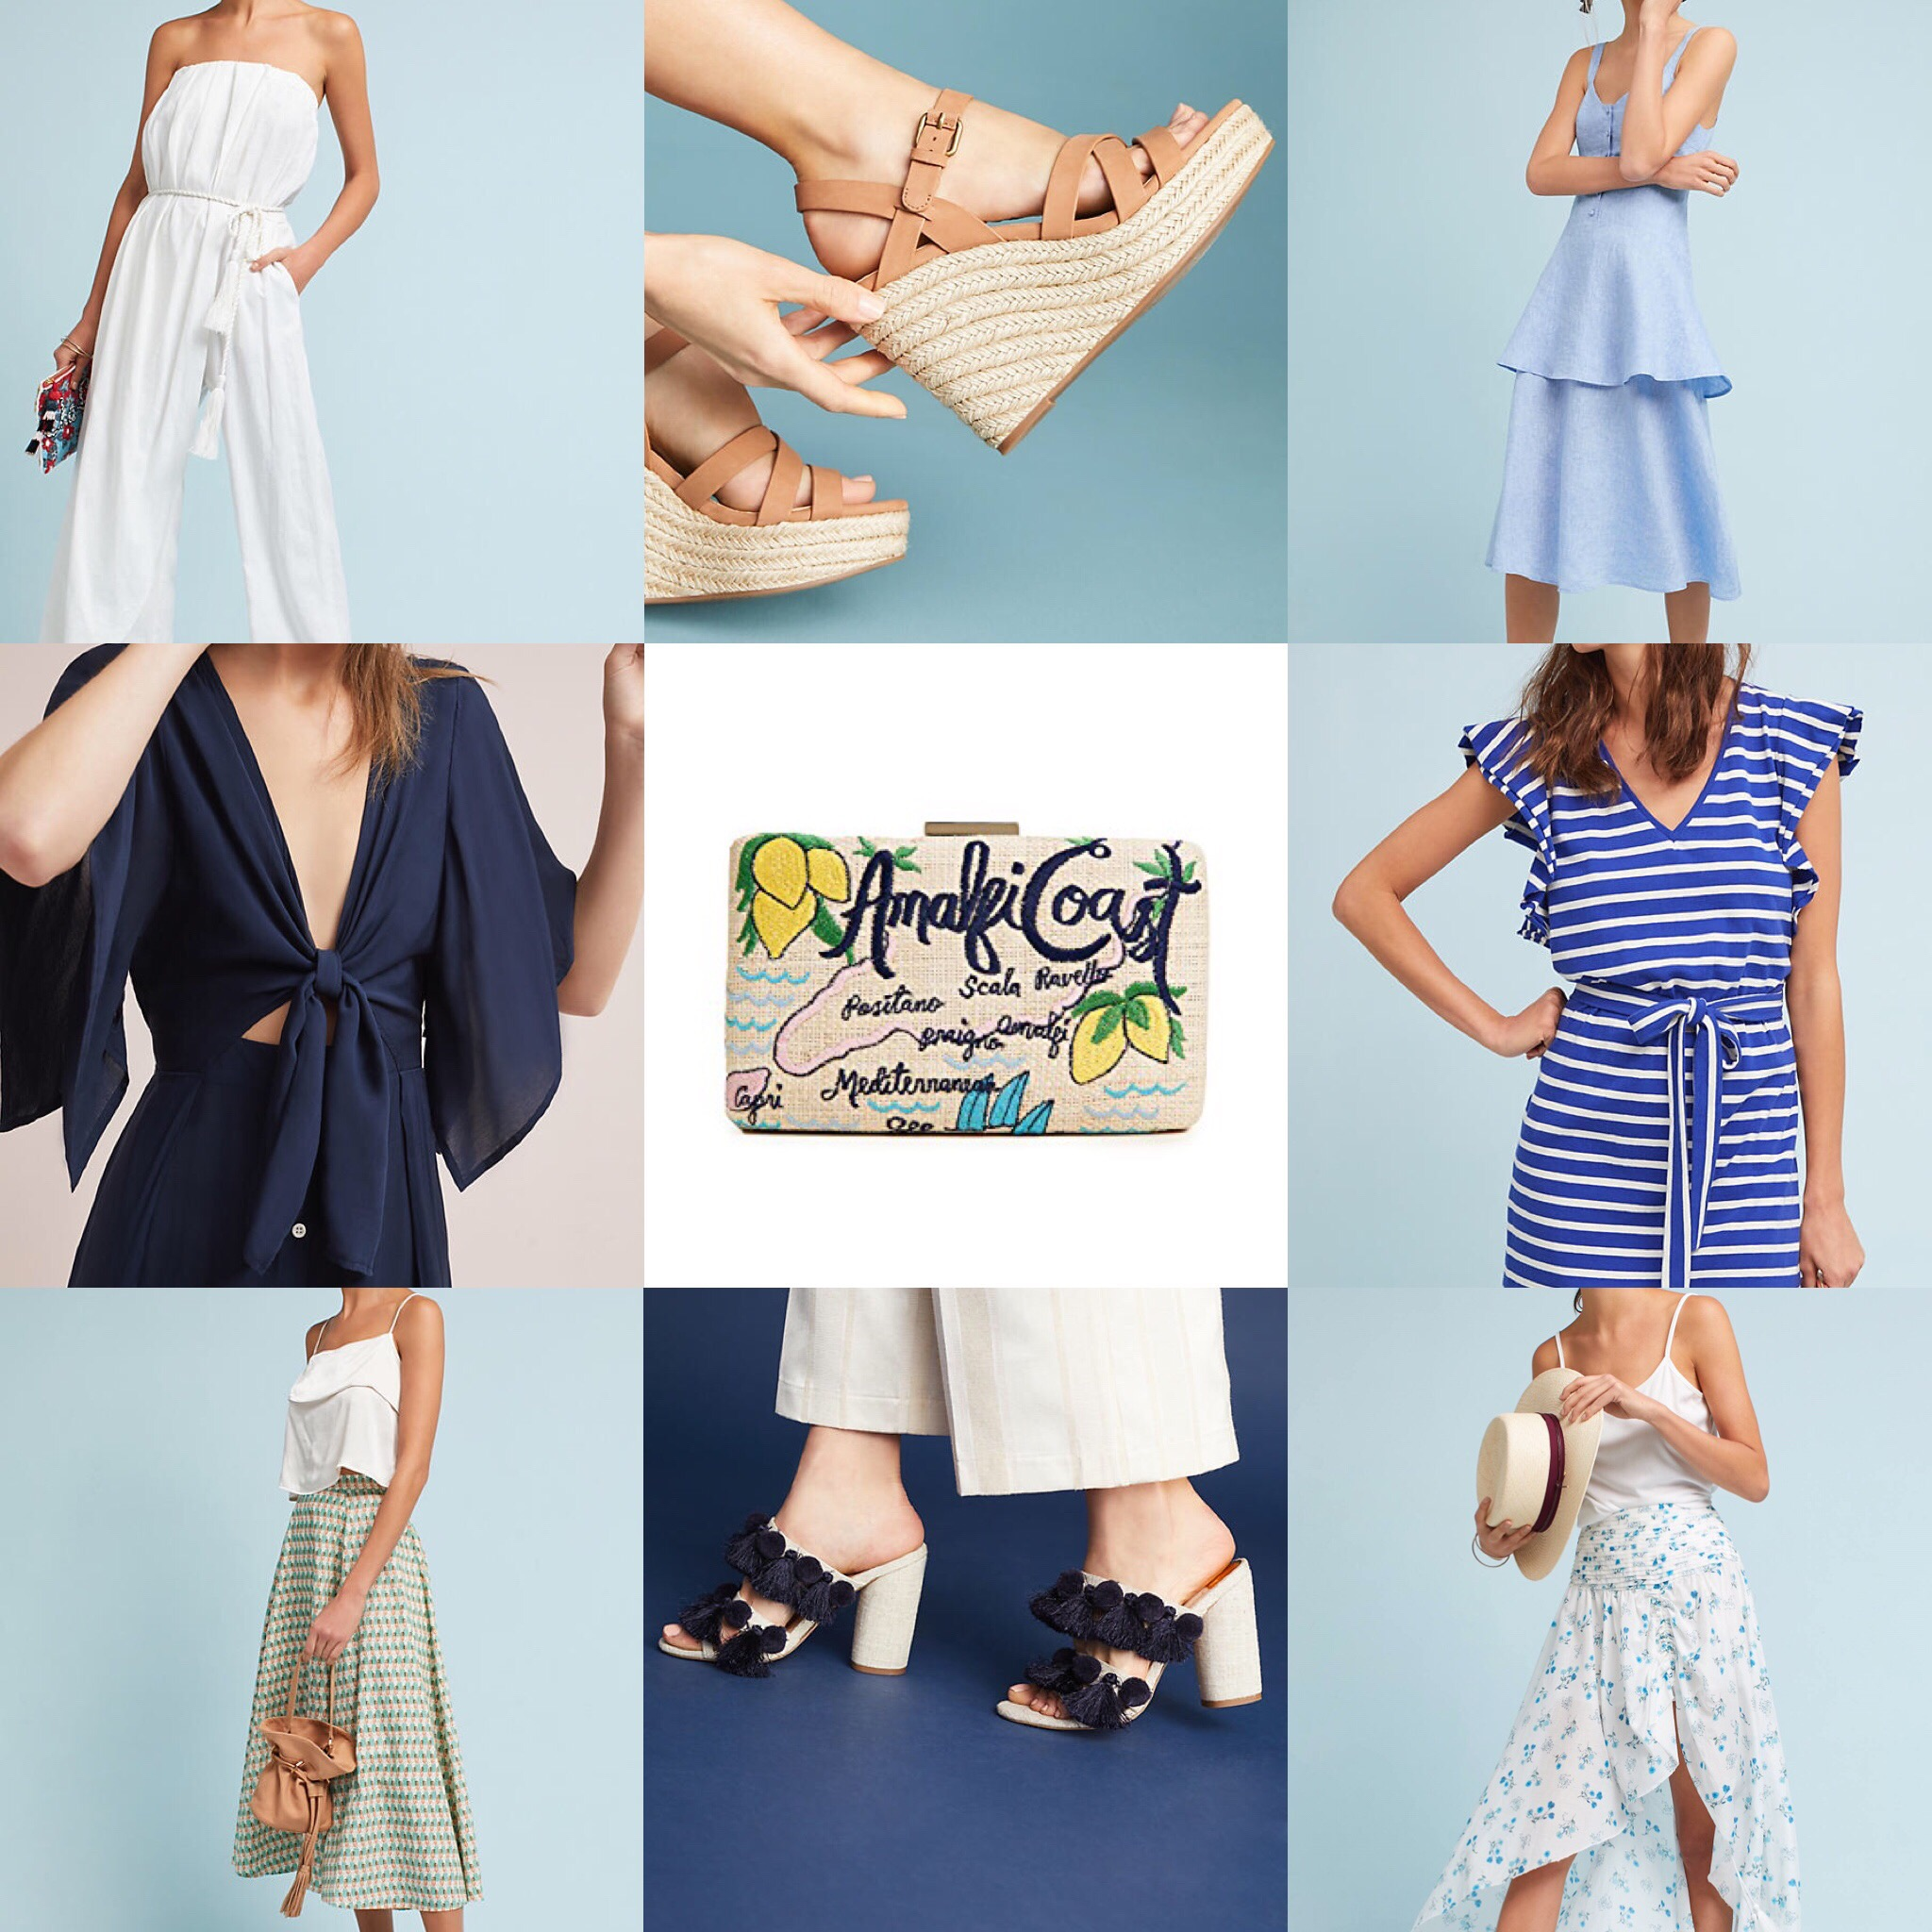 Resort Wear Boutique at Beautifully Seaside